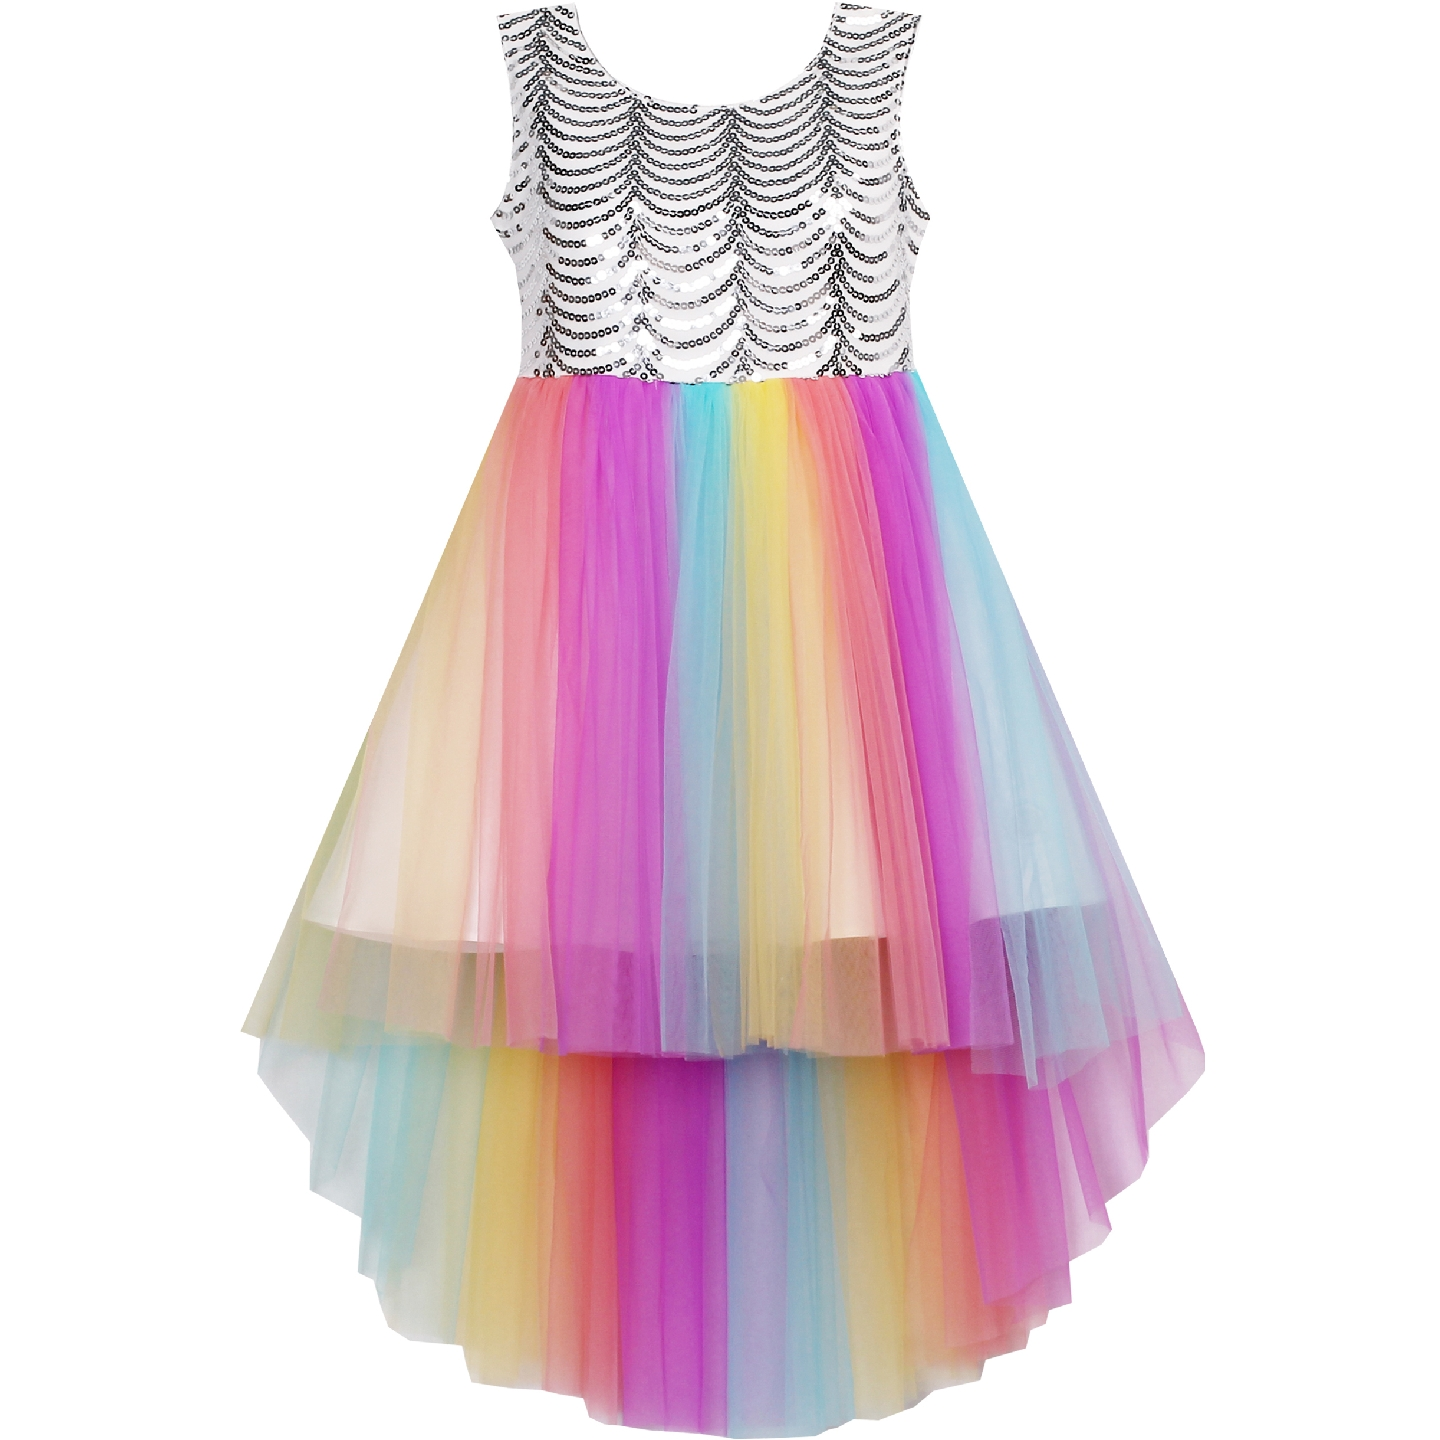 Flower Girl Dress Sequin Mesh Party Wedding Princess Tulle 2019 Summer Dresses Kids Clothes Pageant Sundress Vestidos kids flower girls dresses pageant vestidos bebes lace tulle kid girl party dress for wedding children summer clothes birthday